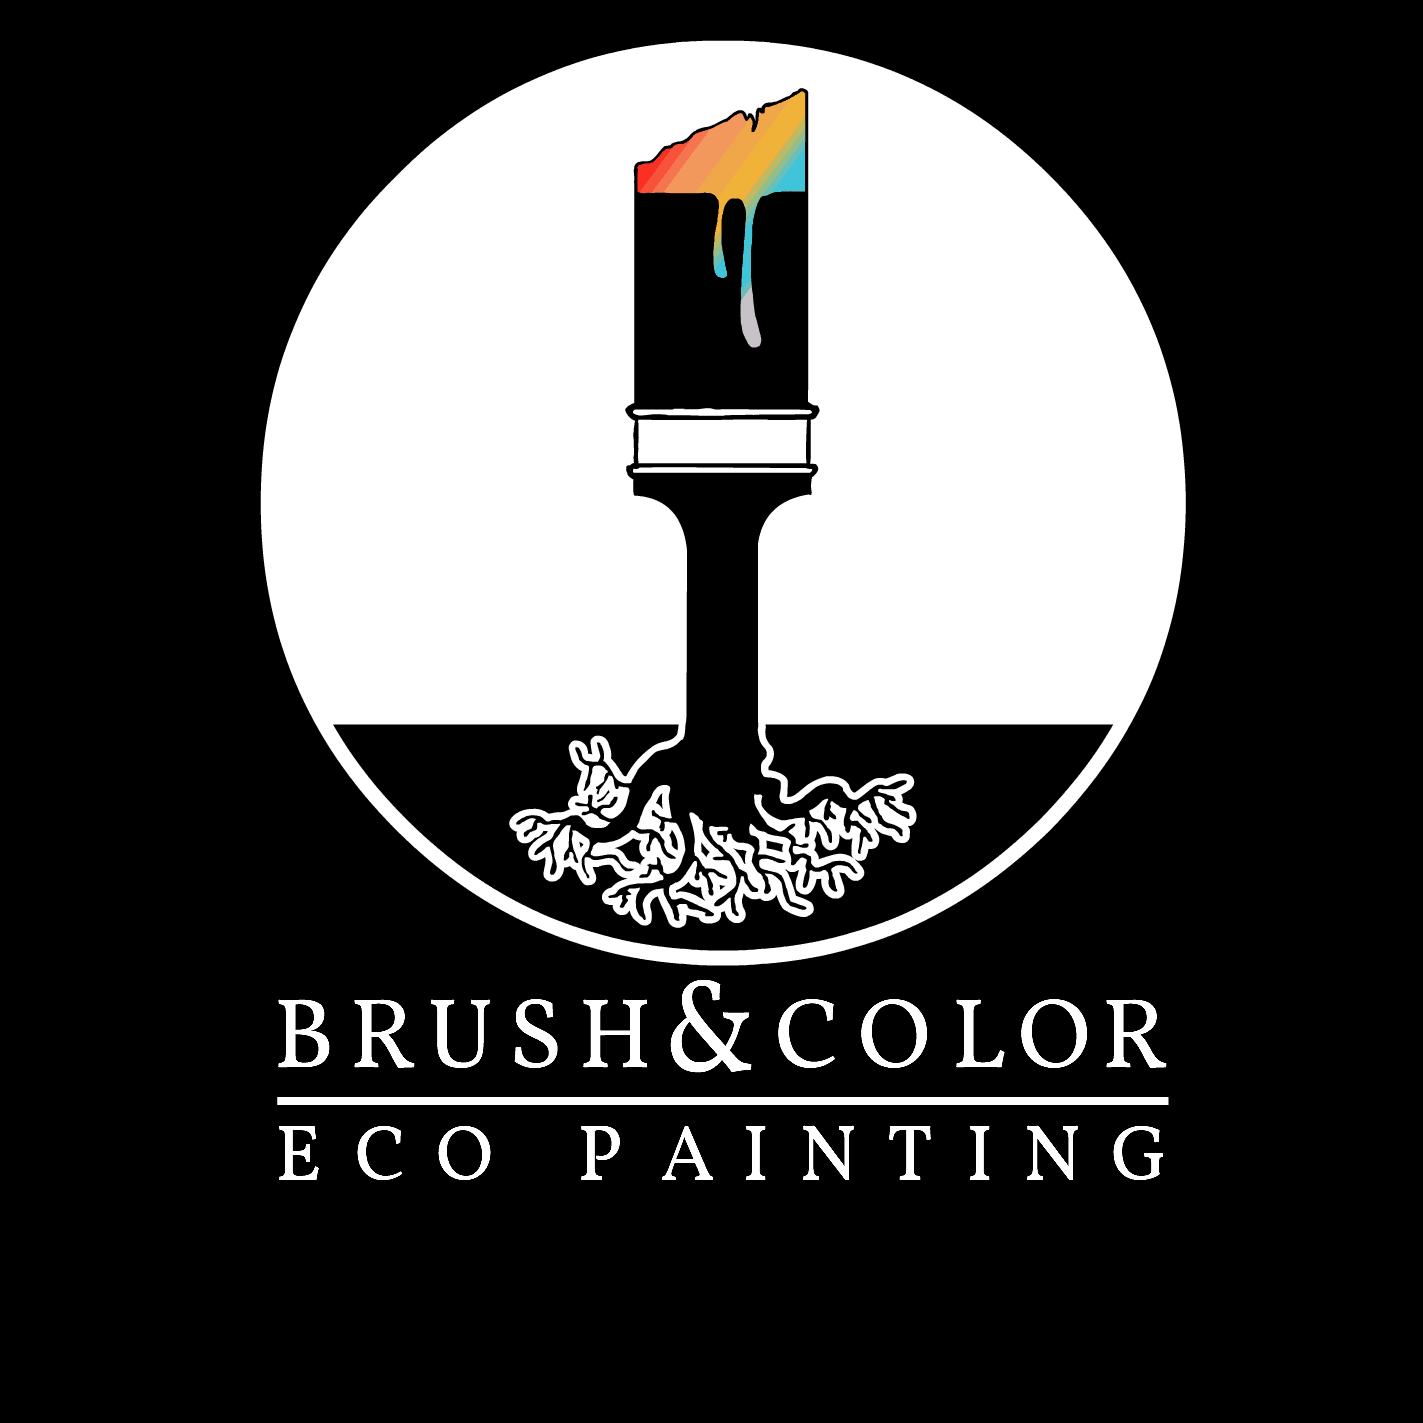 Brush and color eco painting, Painting blog, get leads, SEO, blog posts for painting contractors, painting blog, blog writer for painting contractor, painting business blog